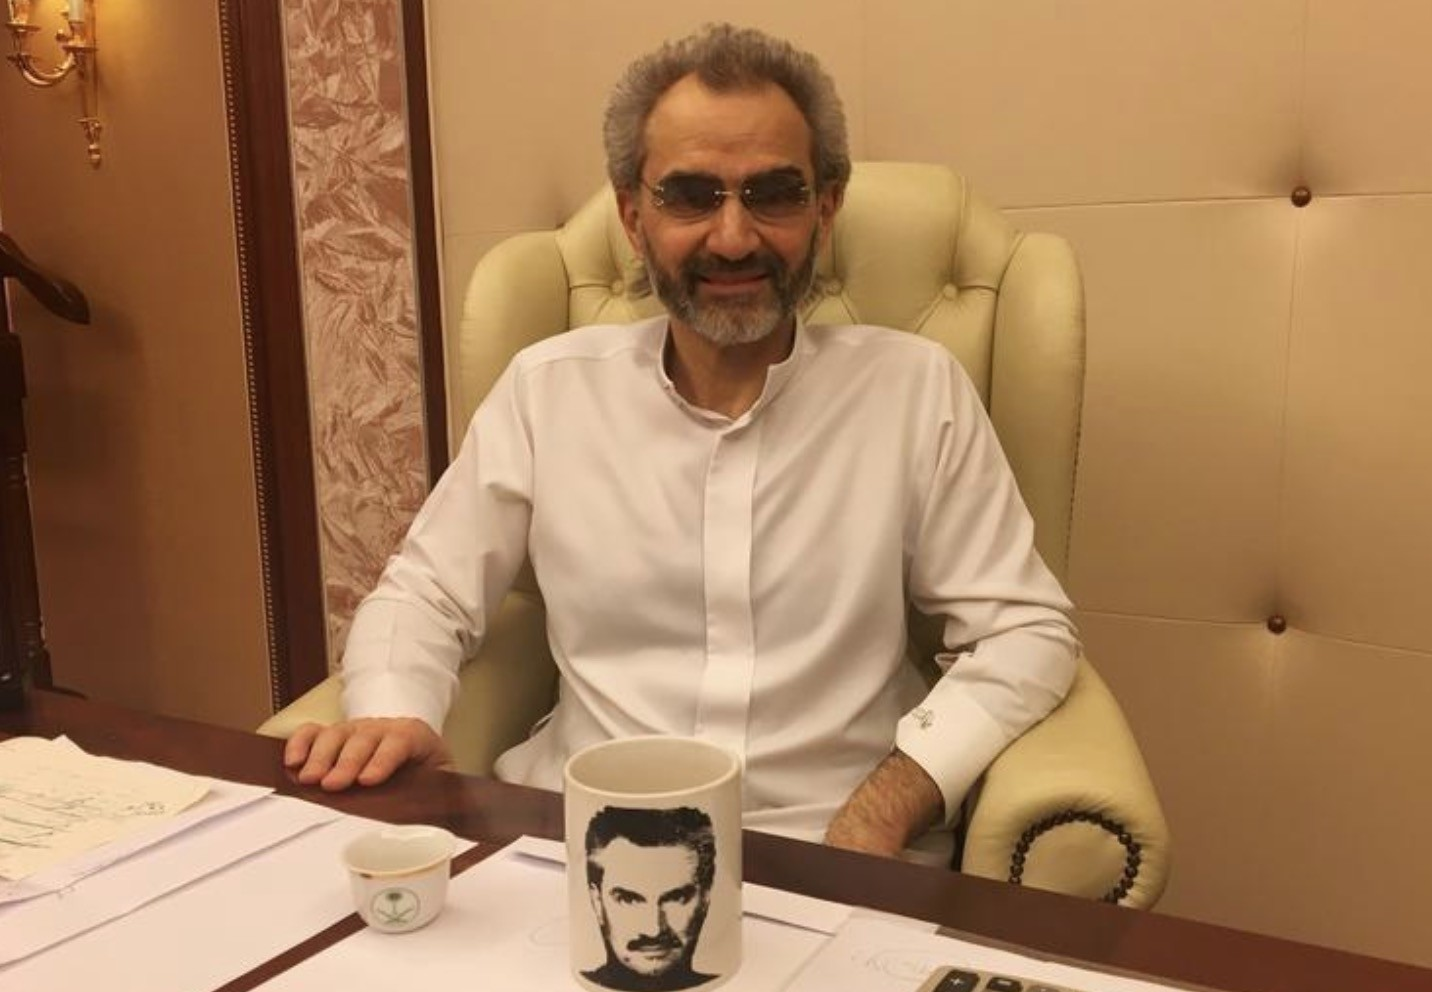 Saudi Arabian billionaire Prince Alwaleed bin Talal sits for an interview with Reuters in the office of the suite where he has been detained at the Ritz-Carlton in Riyadh, Saudi Arabia January 27, 2018 (Reuters Photo)